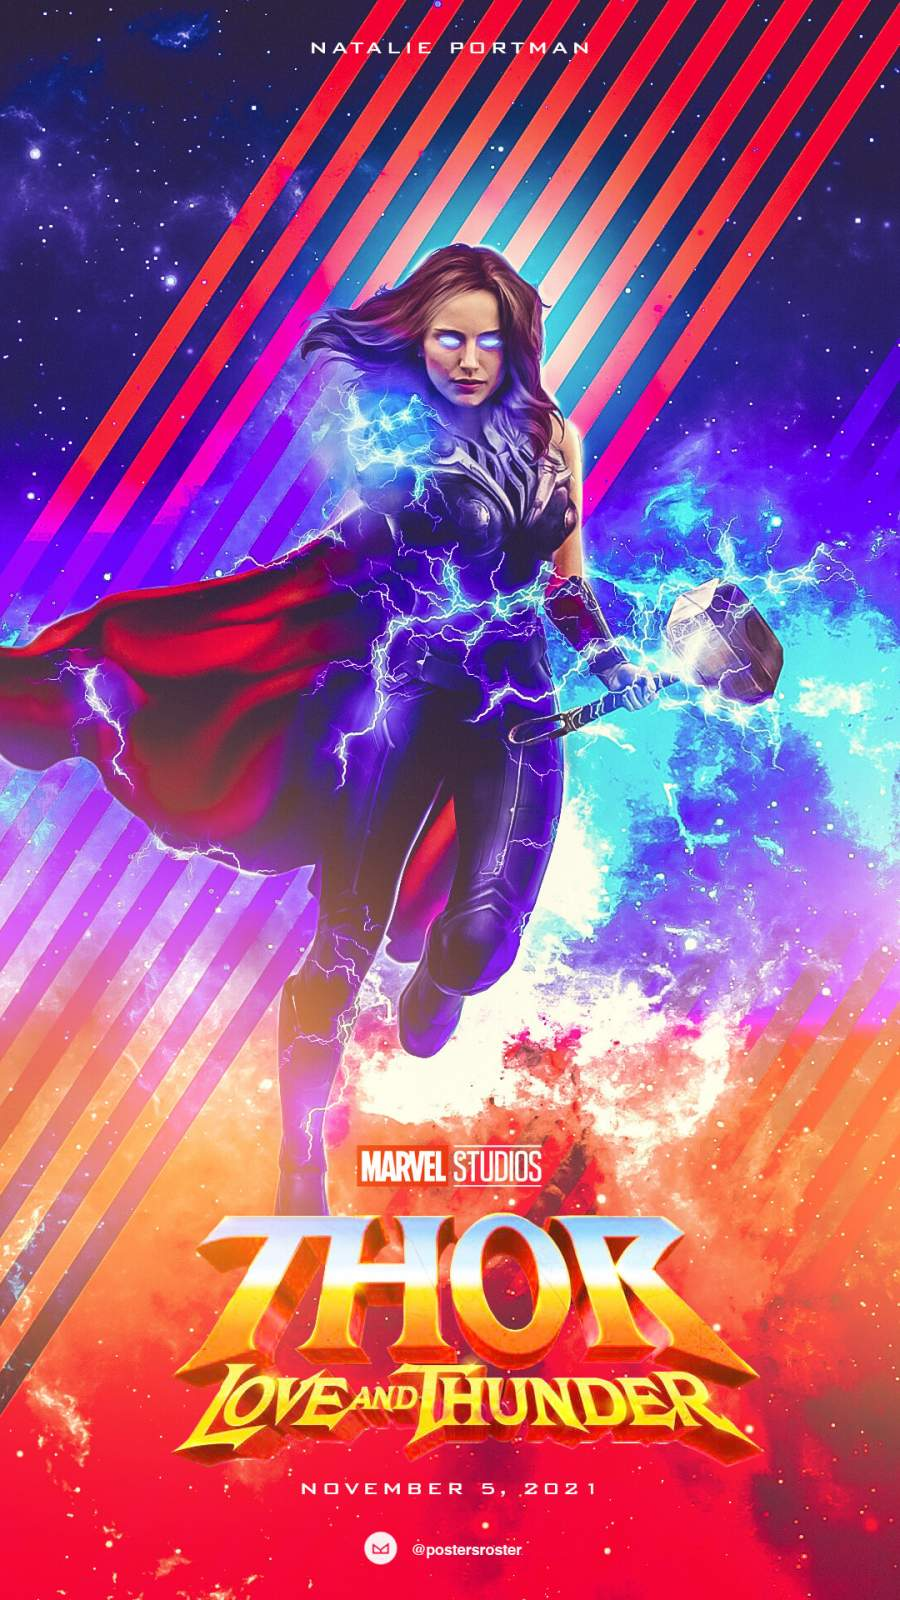 Thor Love and Thunder Natalie Portman iPhone Wallpaper